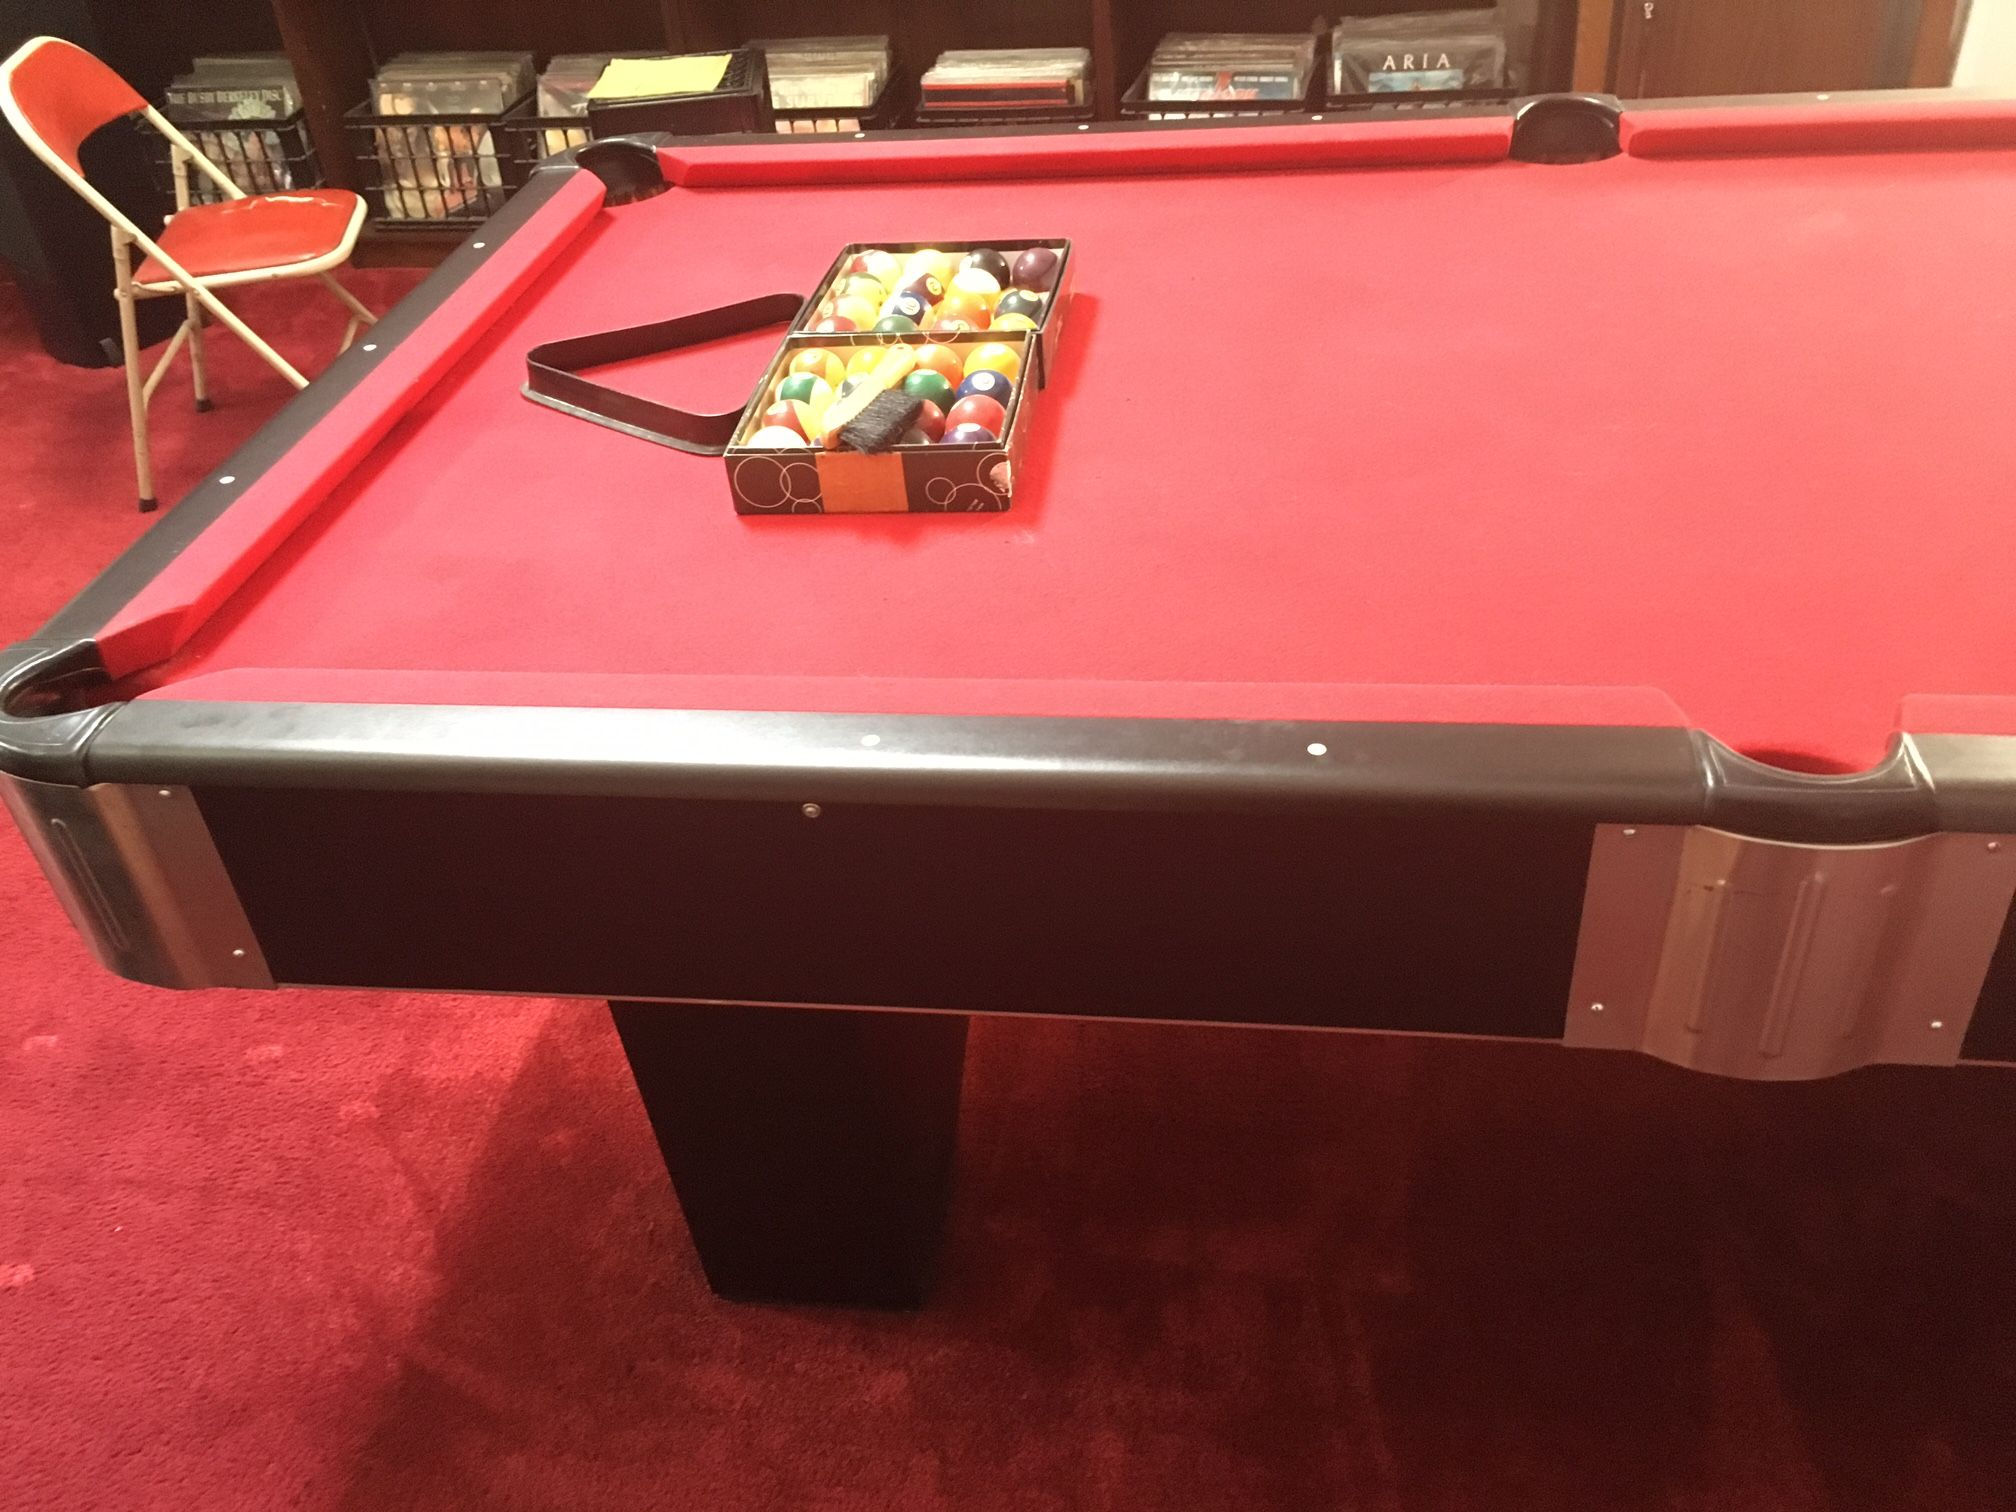 Steepleton Billiards Pool Table Used Pool Tables For Sale - Pool table repair maryland